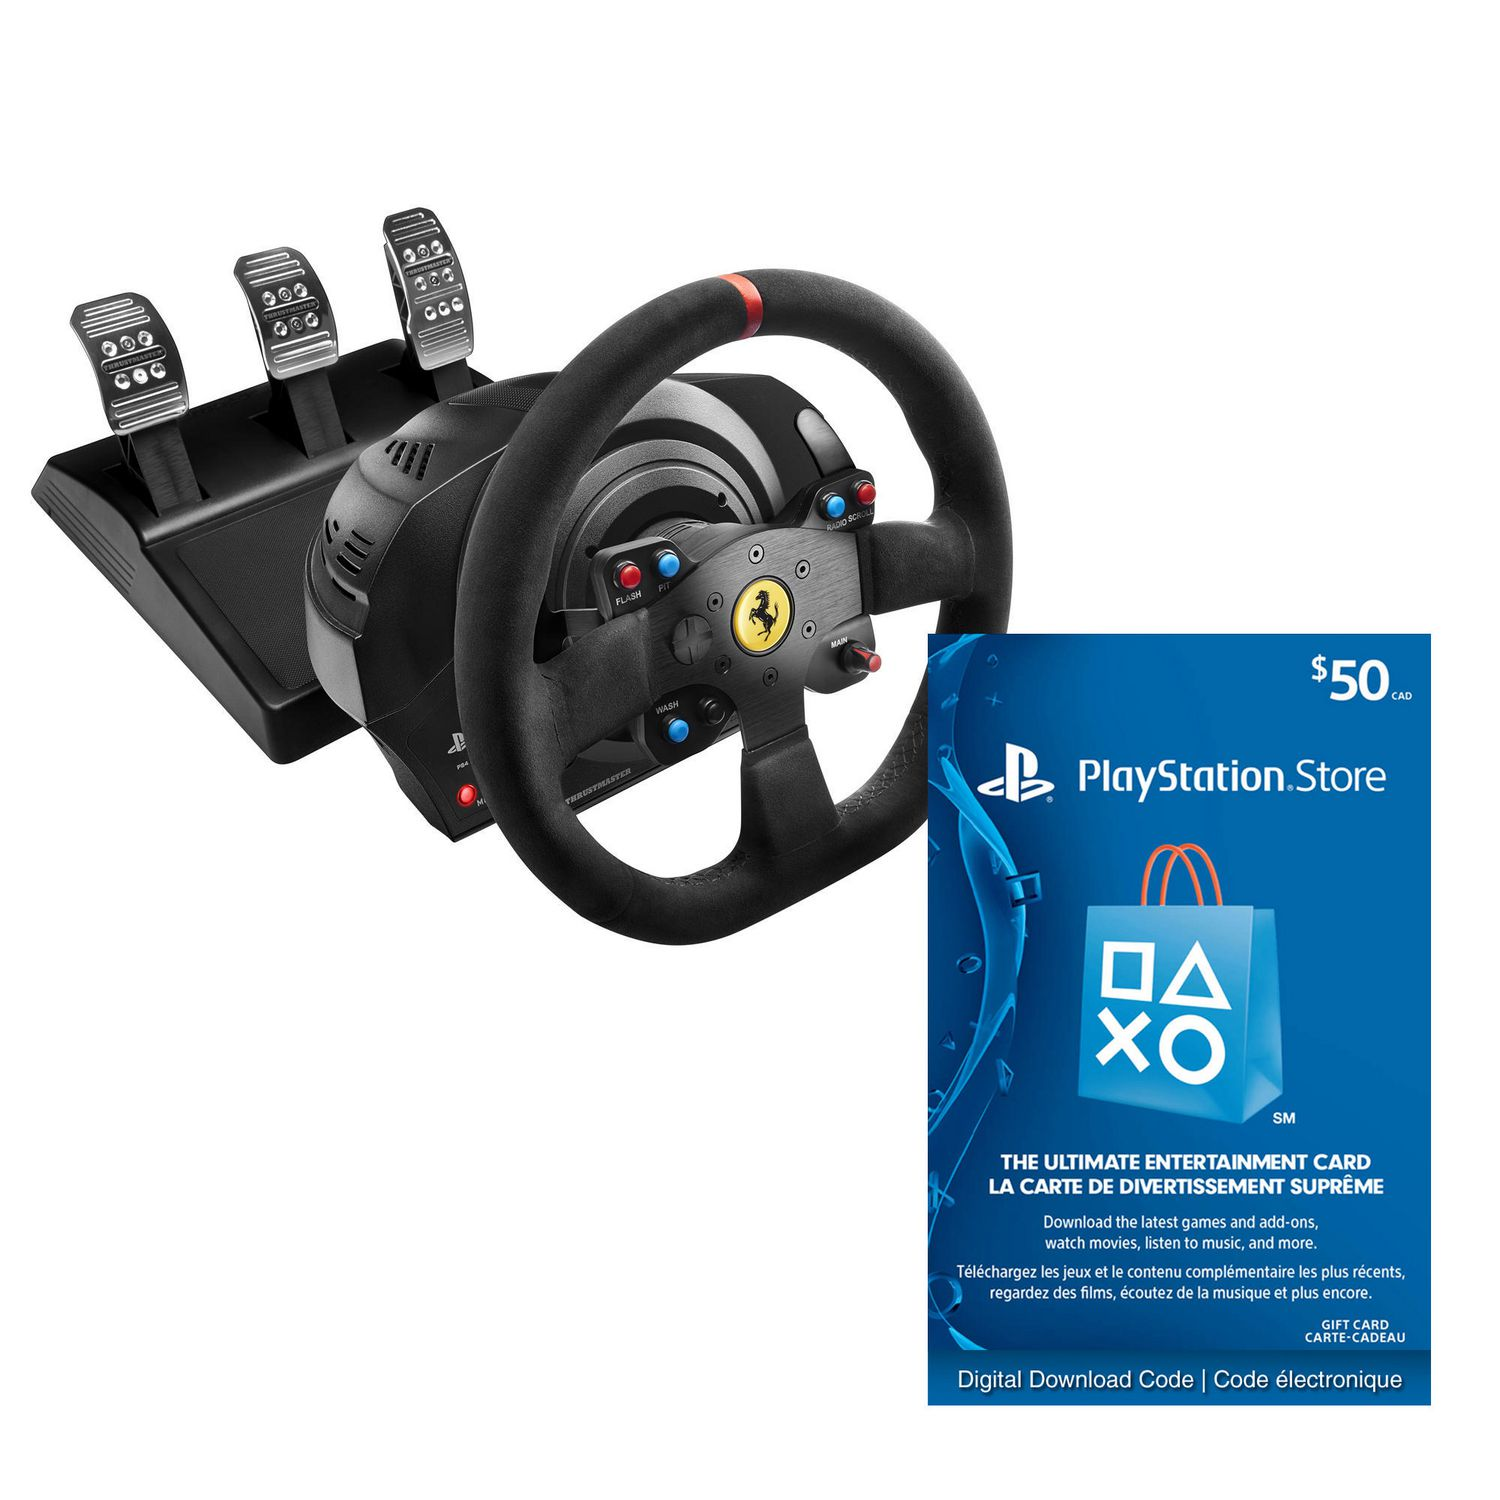 Thrustmaster T300 Ferrari Integral Rw Alcantara Edition With Playstation Network Card 50 Digital Code Electronic Walmart Canada